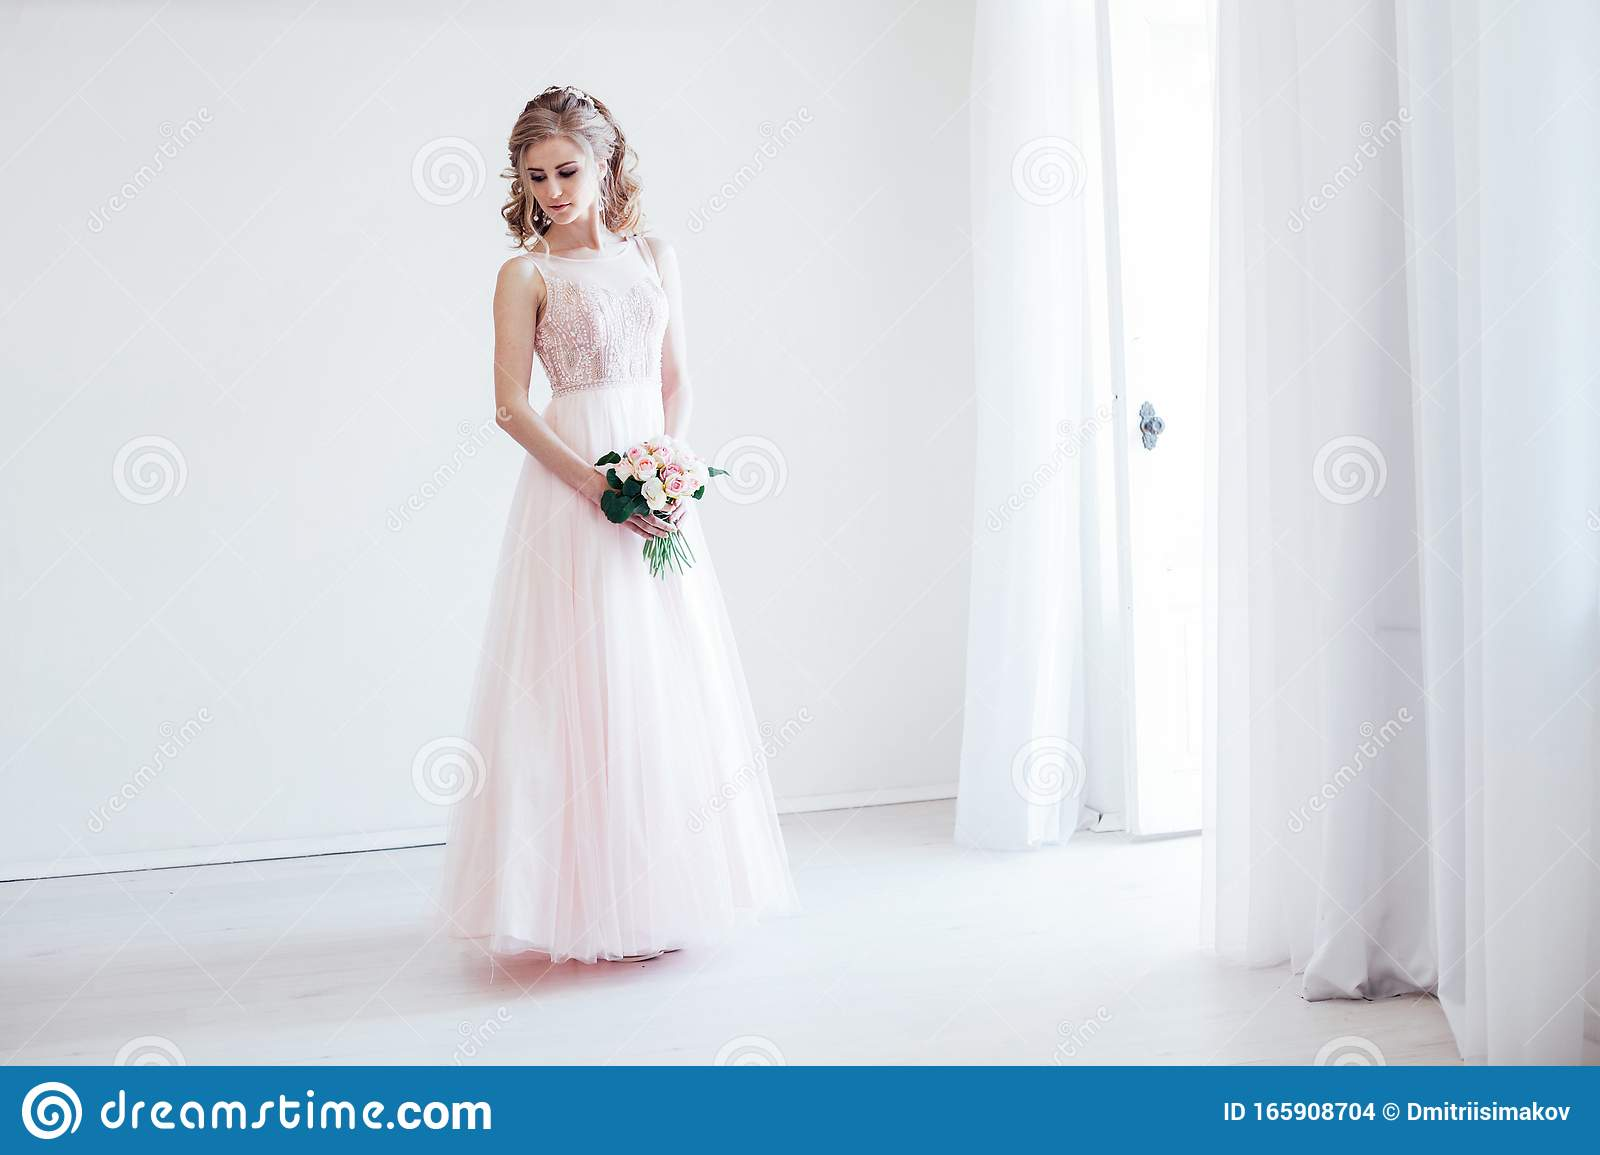 Bride In A Pink Wedding Dress And Bouquet Of Flowers Stock Photo Image Of Arrangement Detail 165908704